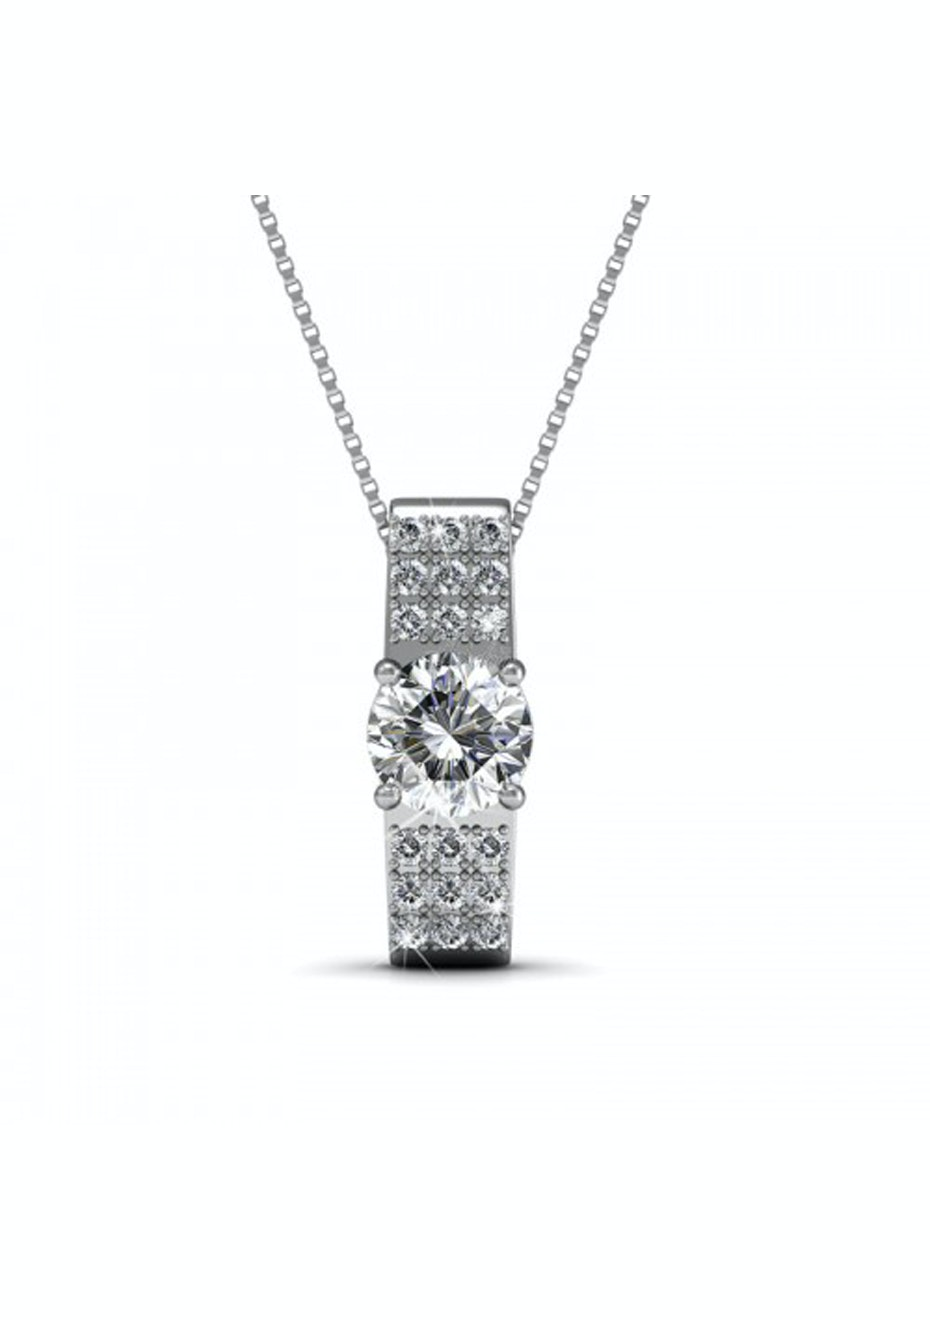 Royale Pendant Necklace Embellished with Crystals from Swarovski